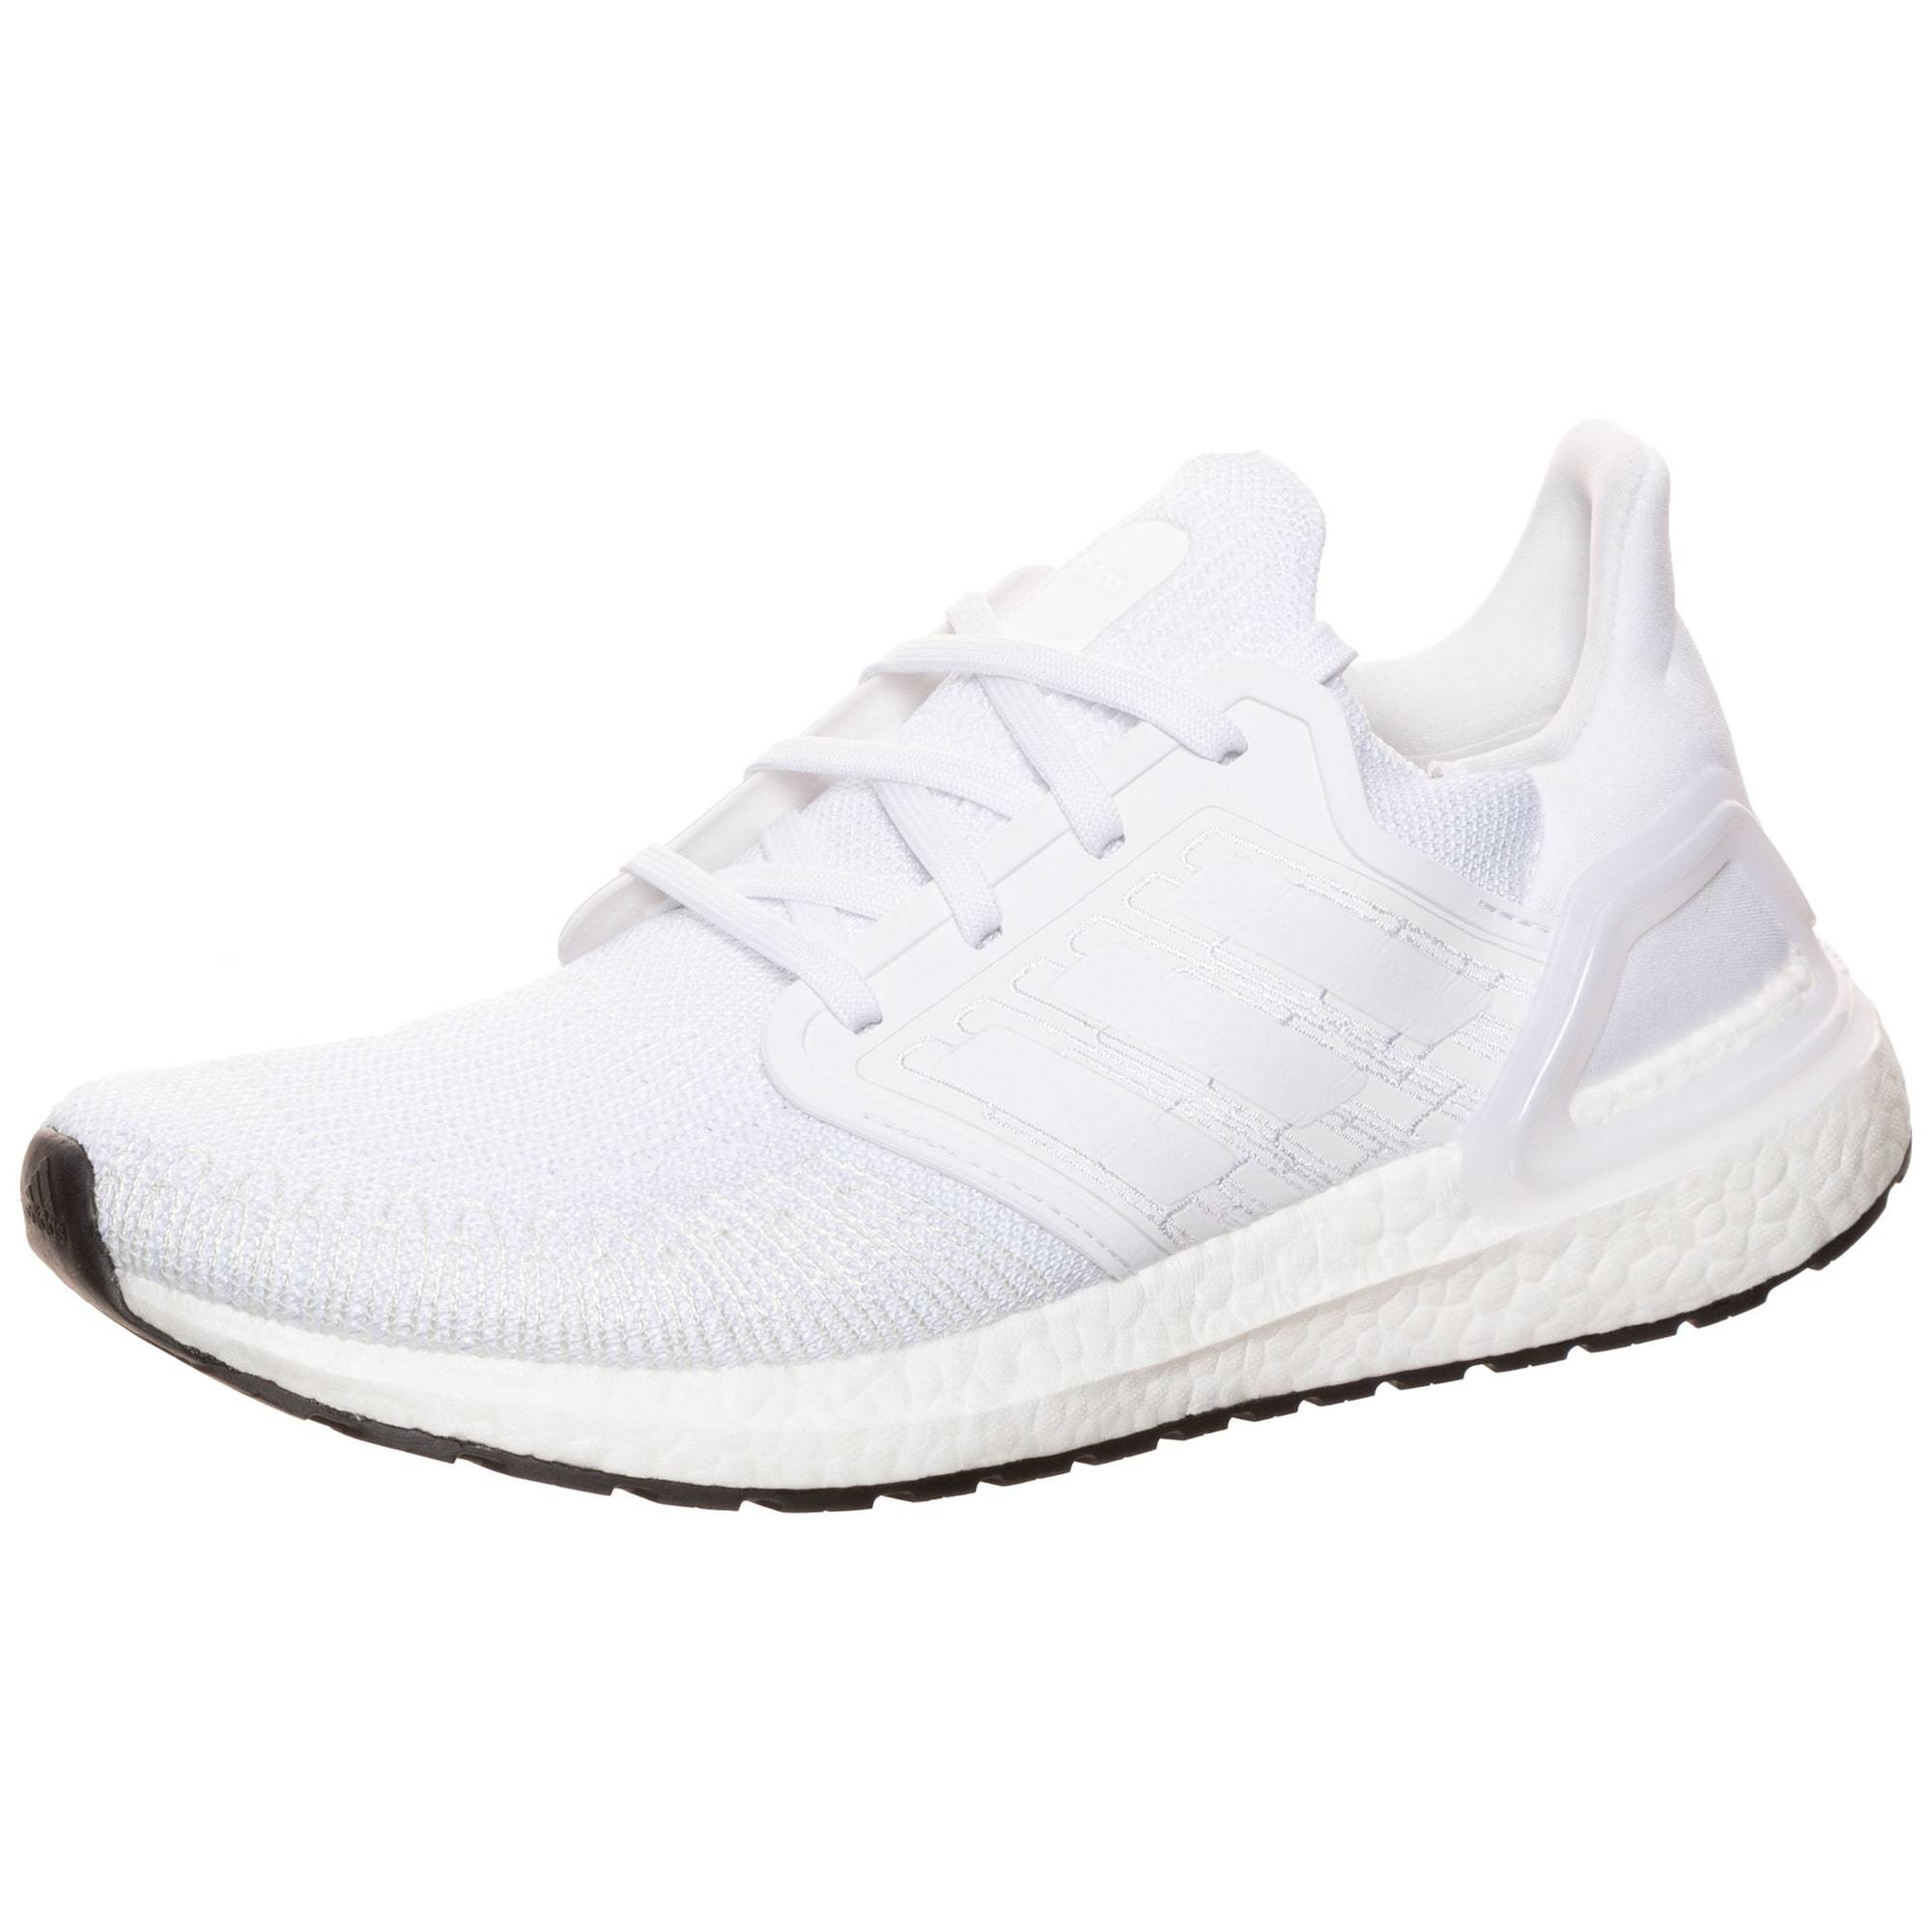 ADIDAS PERFORMANCE Chaussure de course 'ULTRABOOST 20 W'  - Blanc - Taille: 7.5 - female